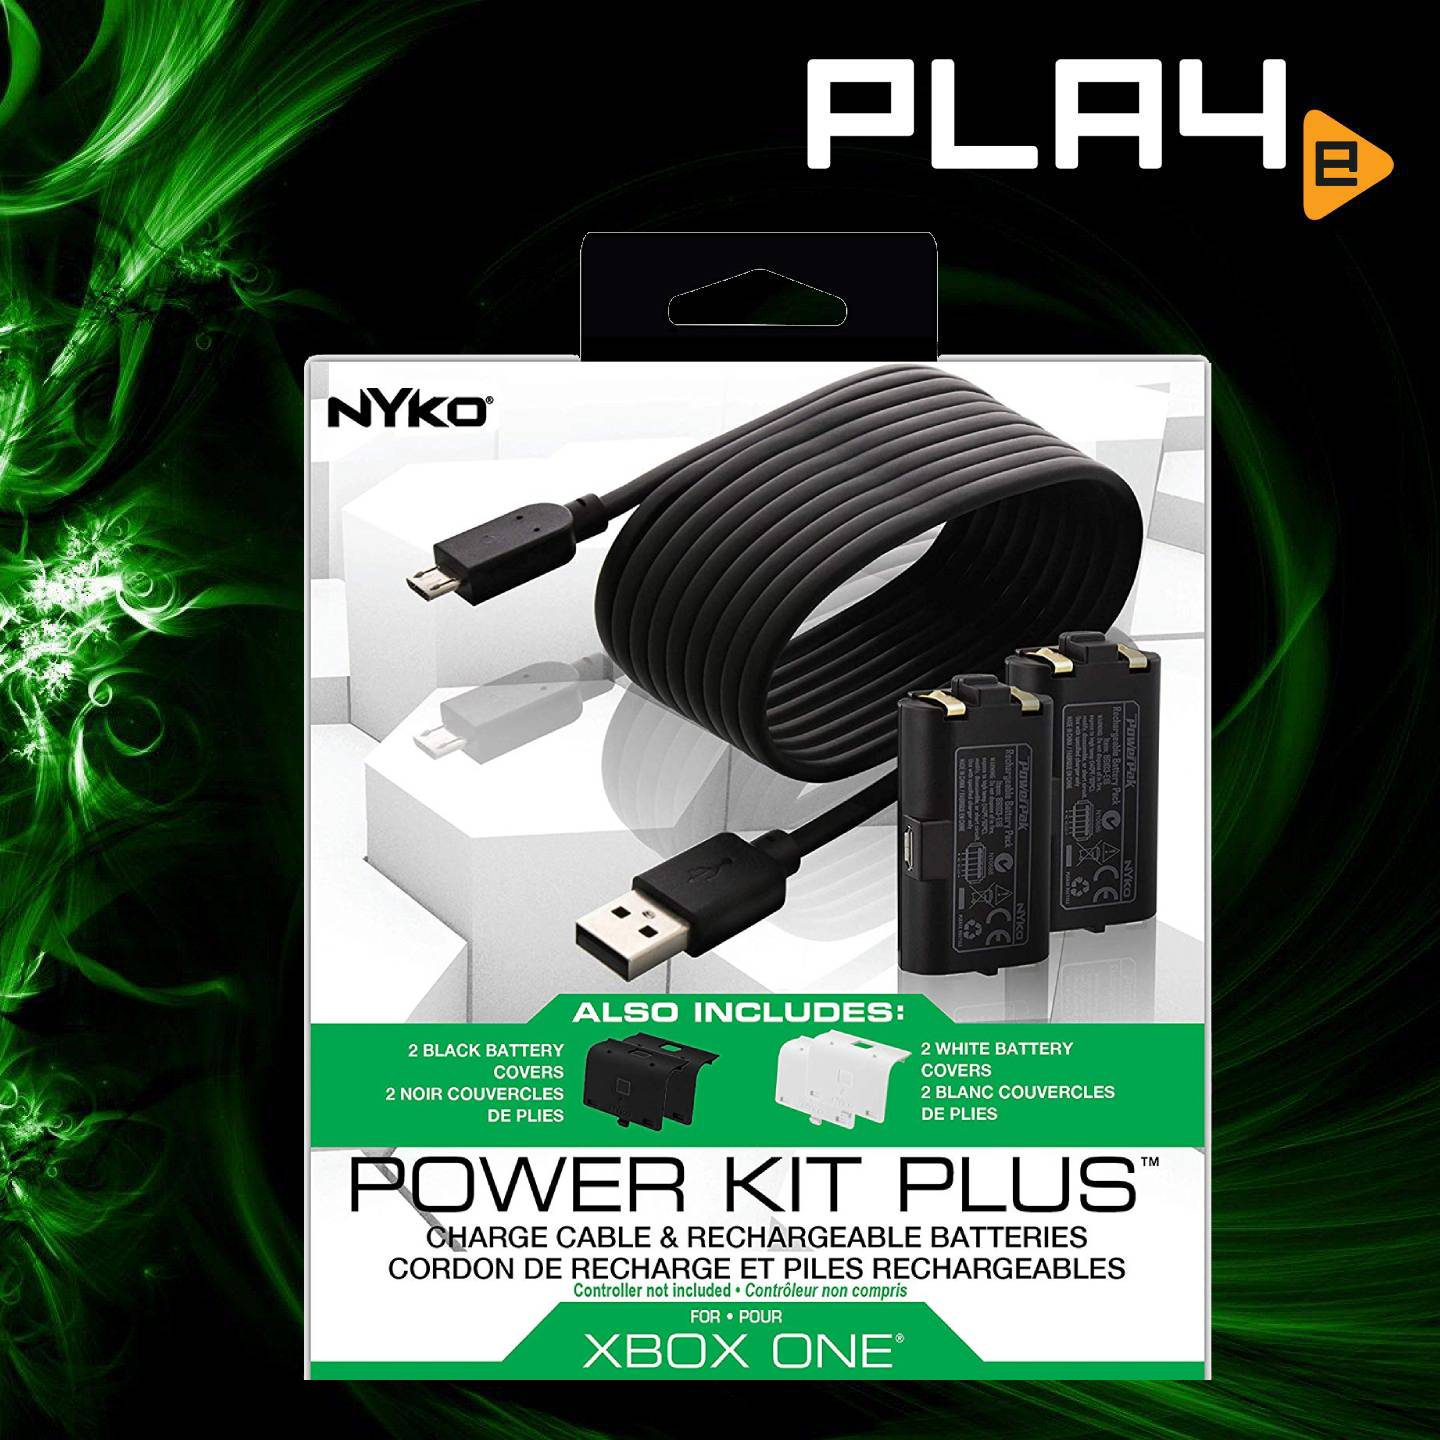 XBox One Nyko Power Kit Plus ( Batt Cover + Battery, Cable) | PLAYe